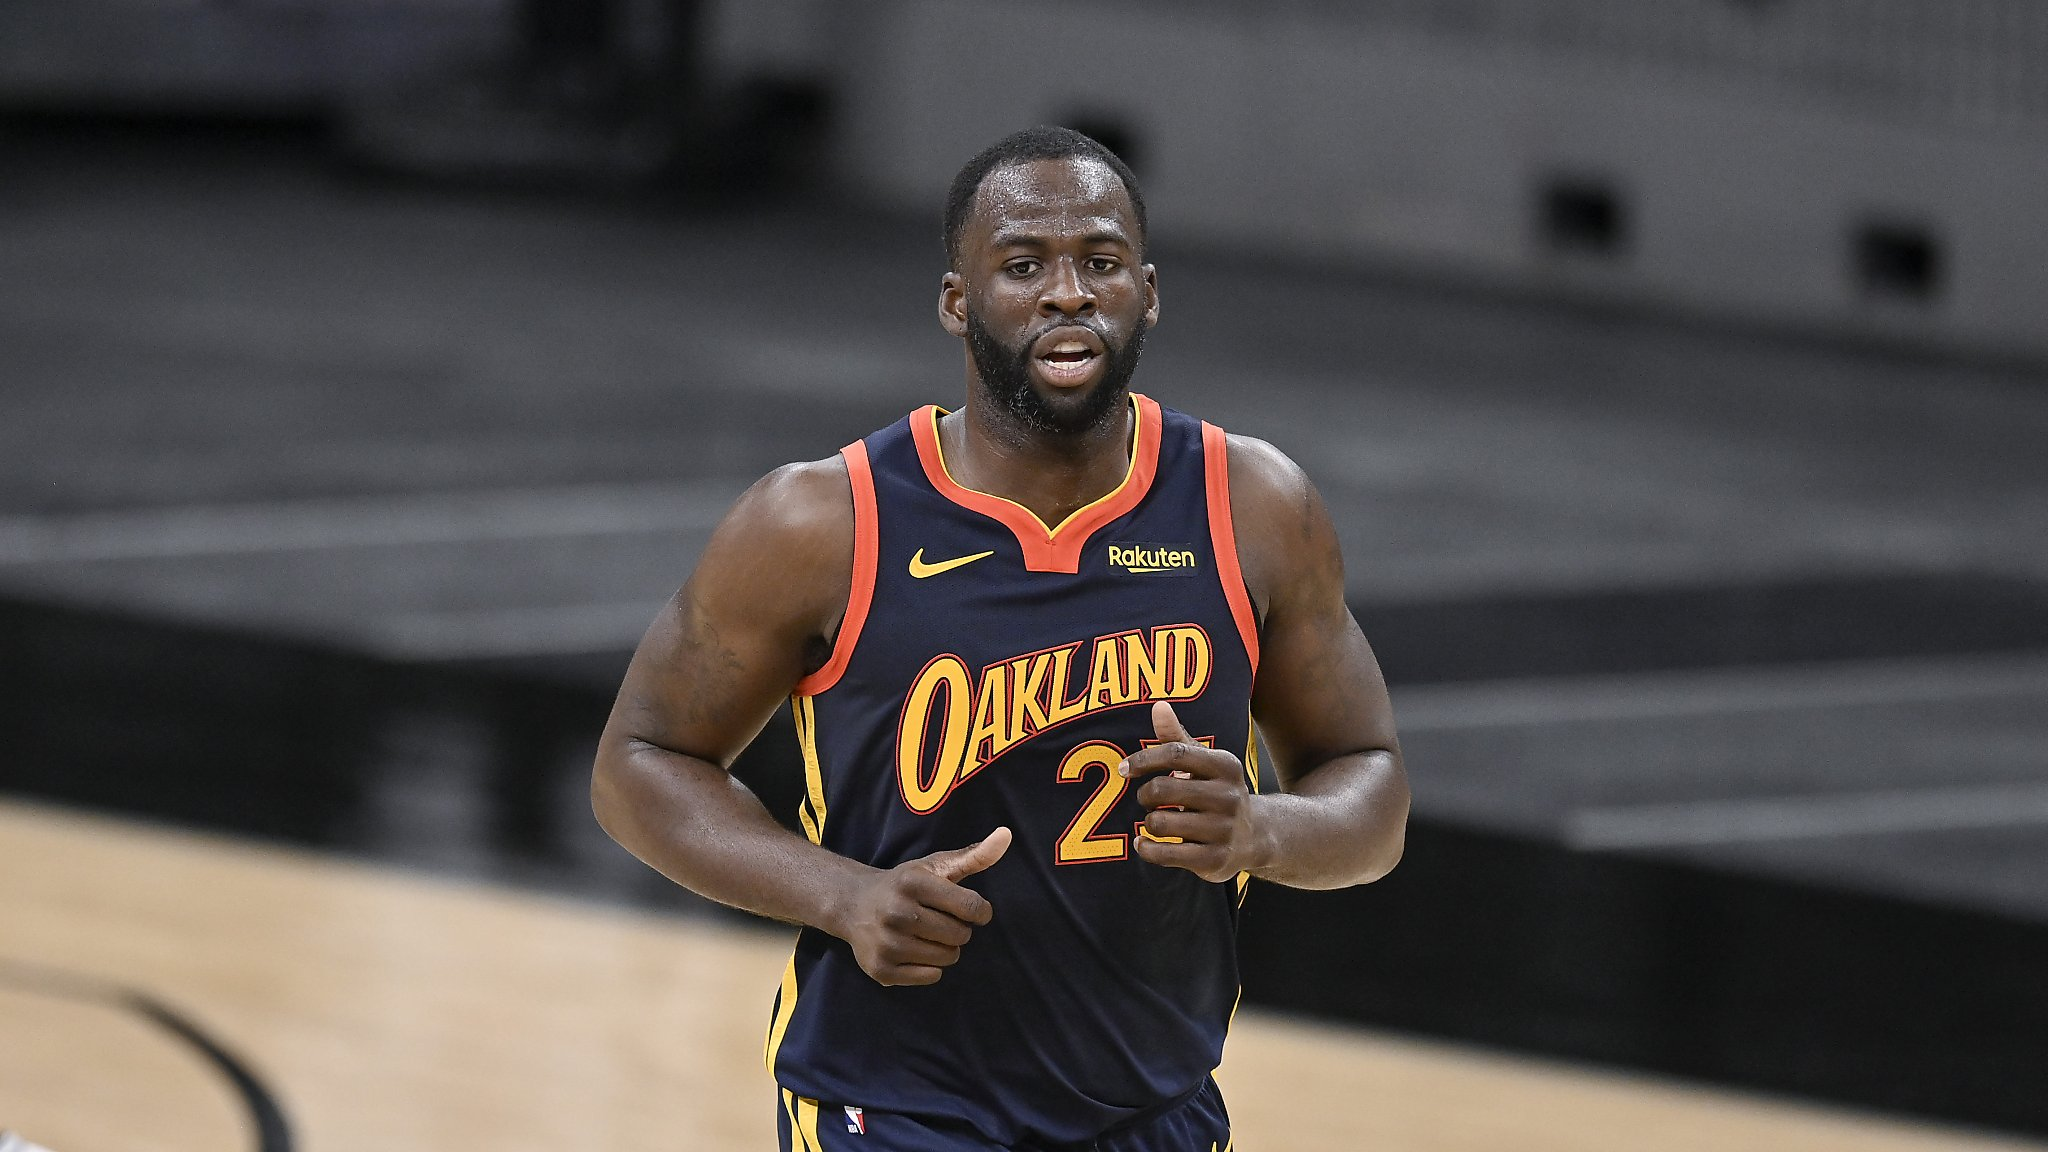 LeBron James co-signs Draymond Green's inane COVID comments about Warriors' Andrew Wiggins